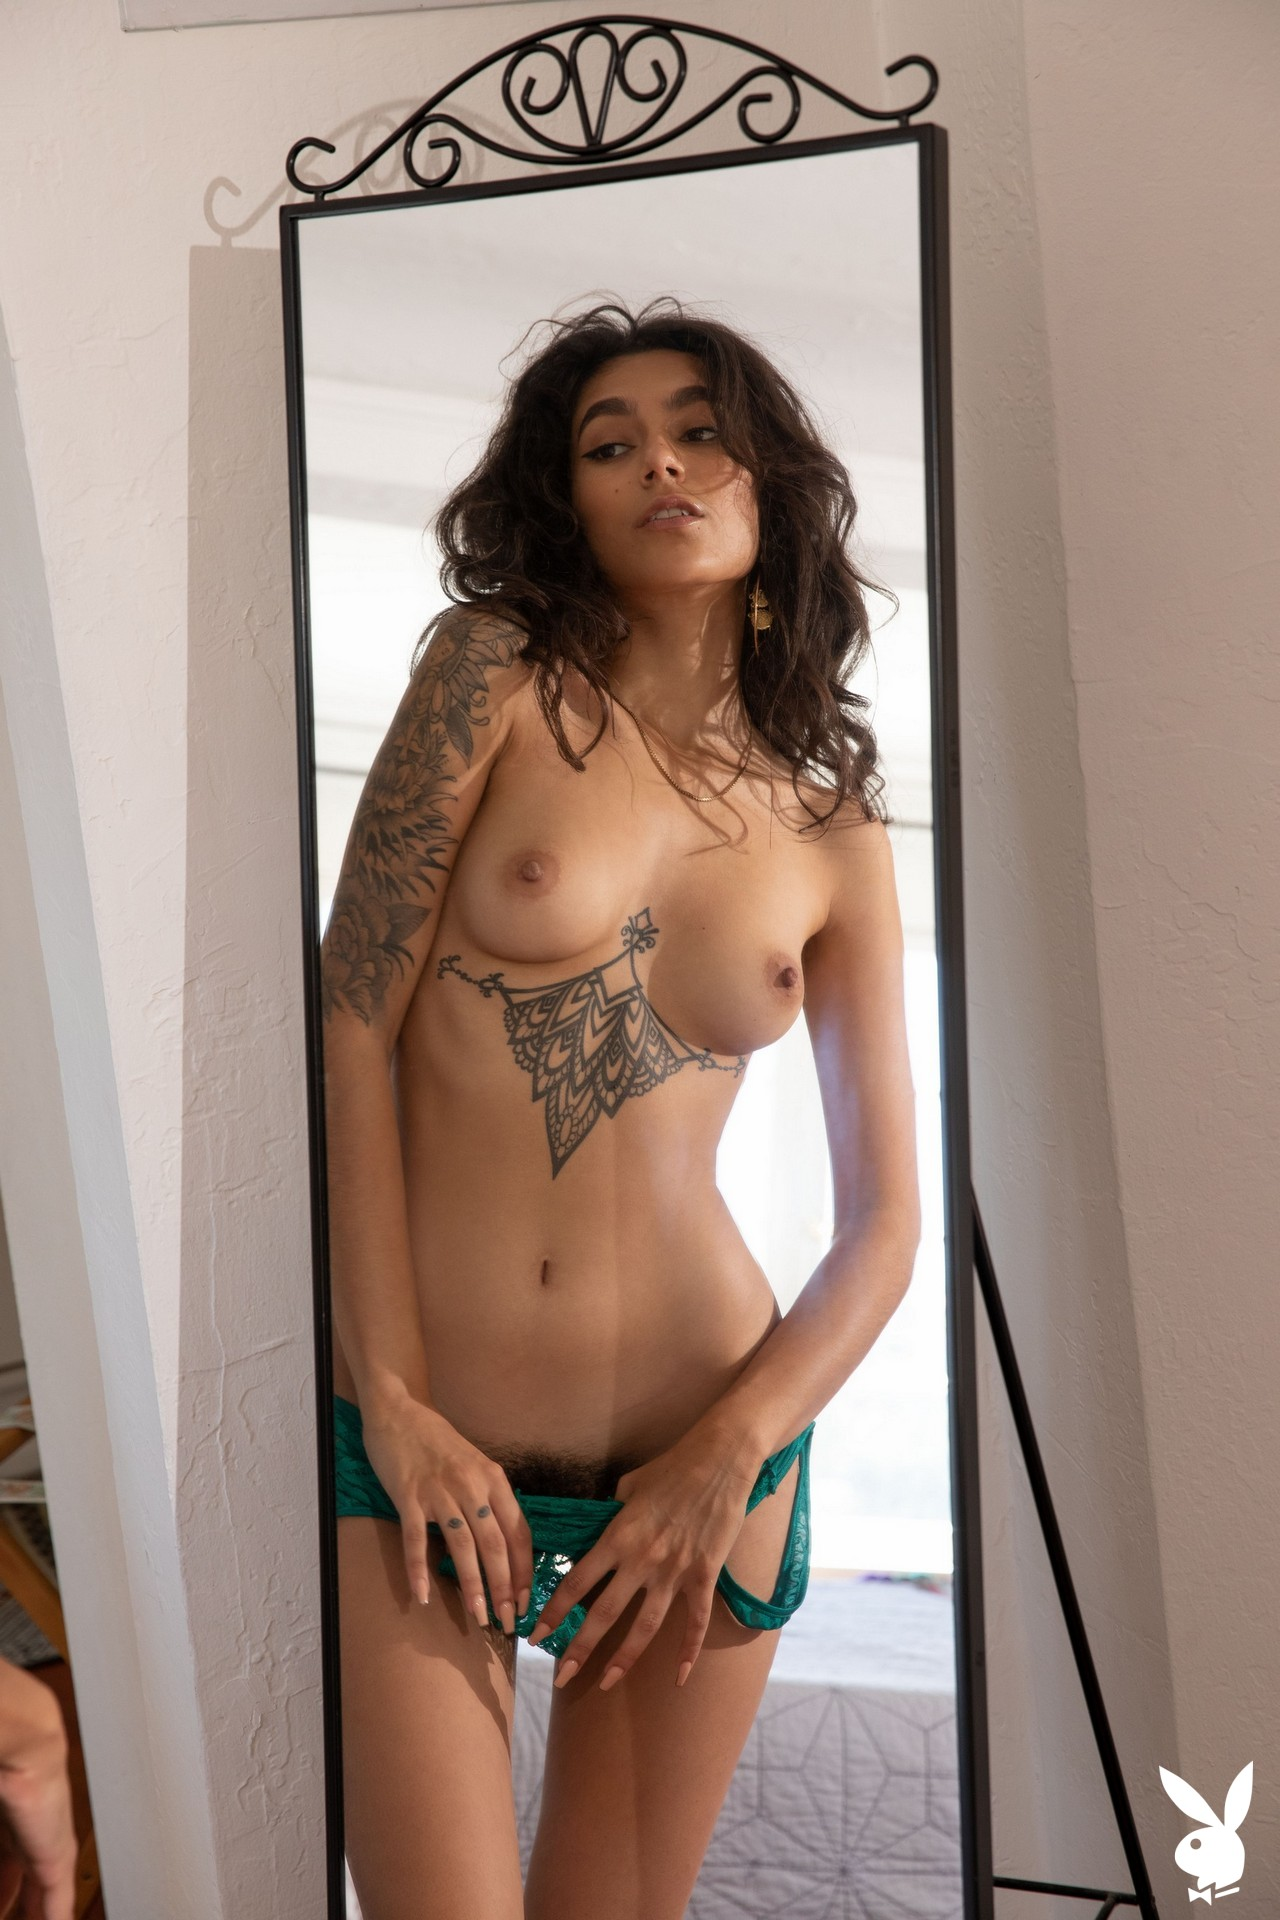 Hades In Genuine Attraction Playboy Plus (12)